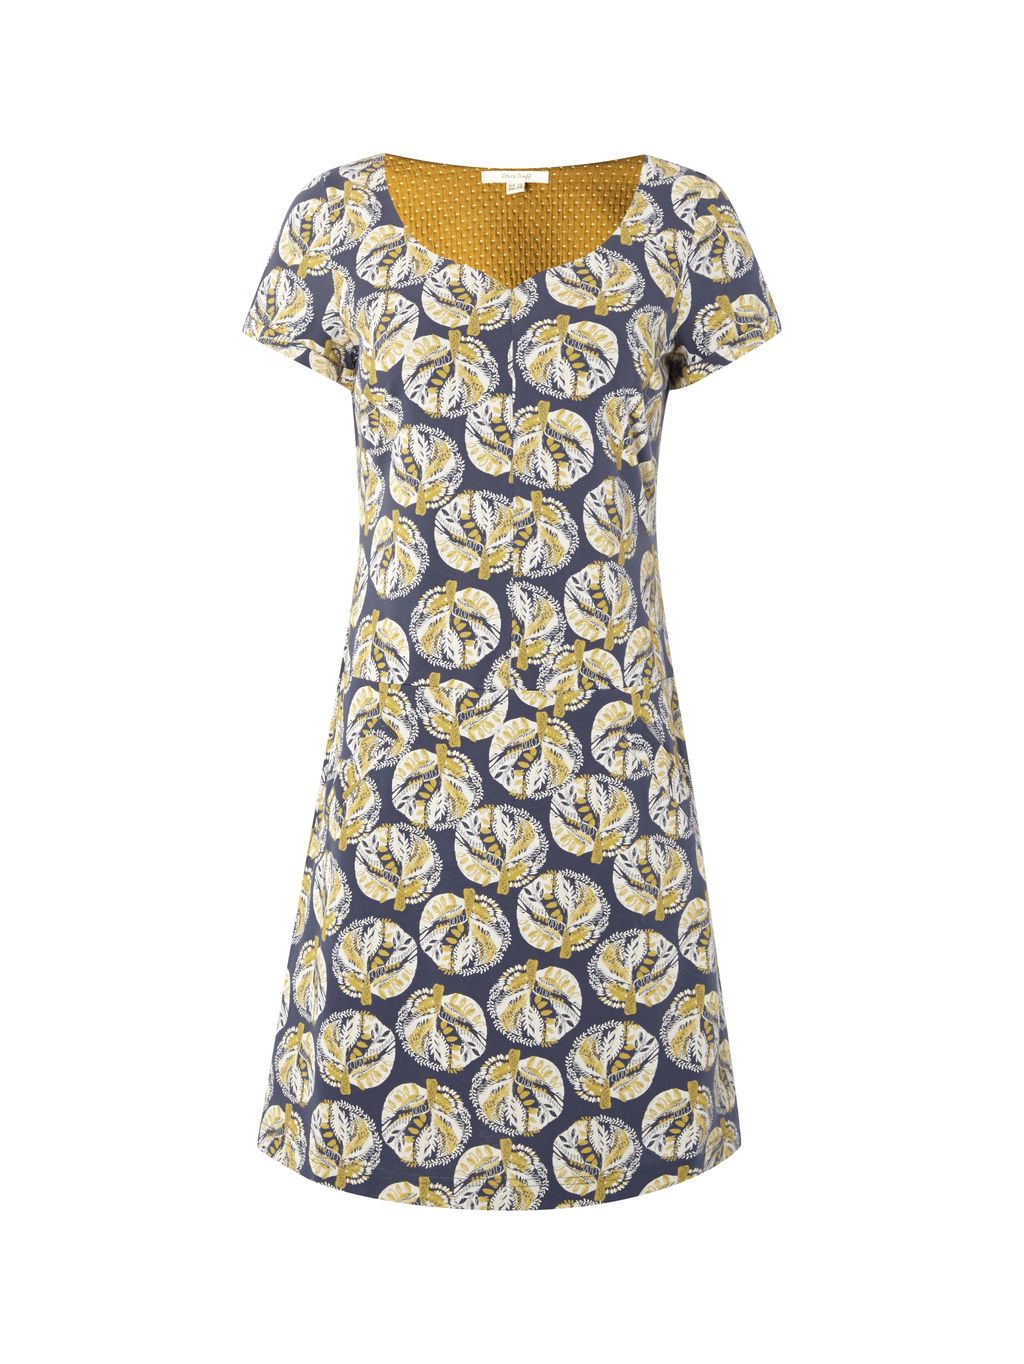 Archive Jersey Dress, Yellow - style: shift; neckline: v-neck; predominant colour: navy; secondary colour: primrose yellow; occasions: casual; length: just above the knee; fit: body skimming; fibres: cotton - 100%; sleeve length: short sleeve; sleeve style: standard; pattern type: fabric; pattern: patterned/print; texture group: jersey - stretchy/drapey; multicoloured: multicoloured; season: s/s 2016; wardrobe: highlight